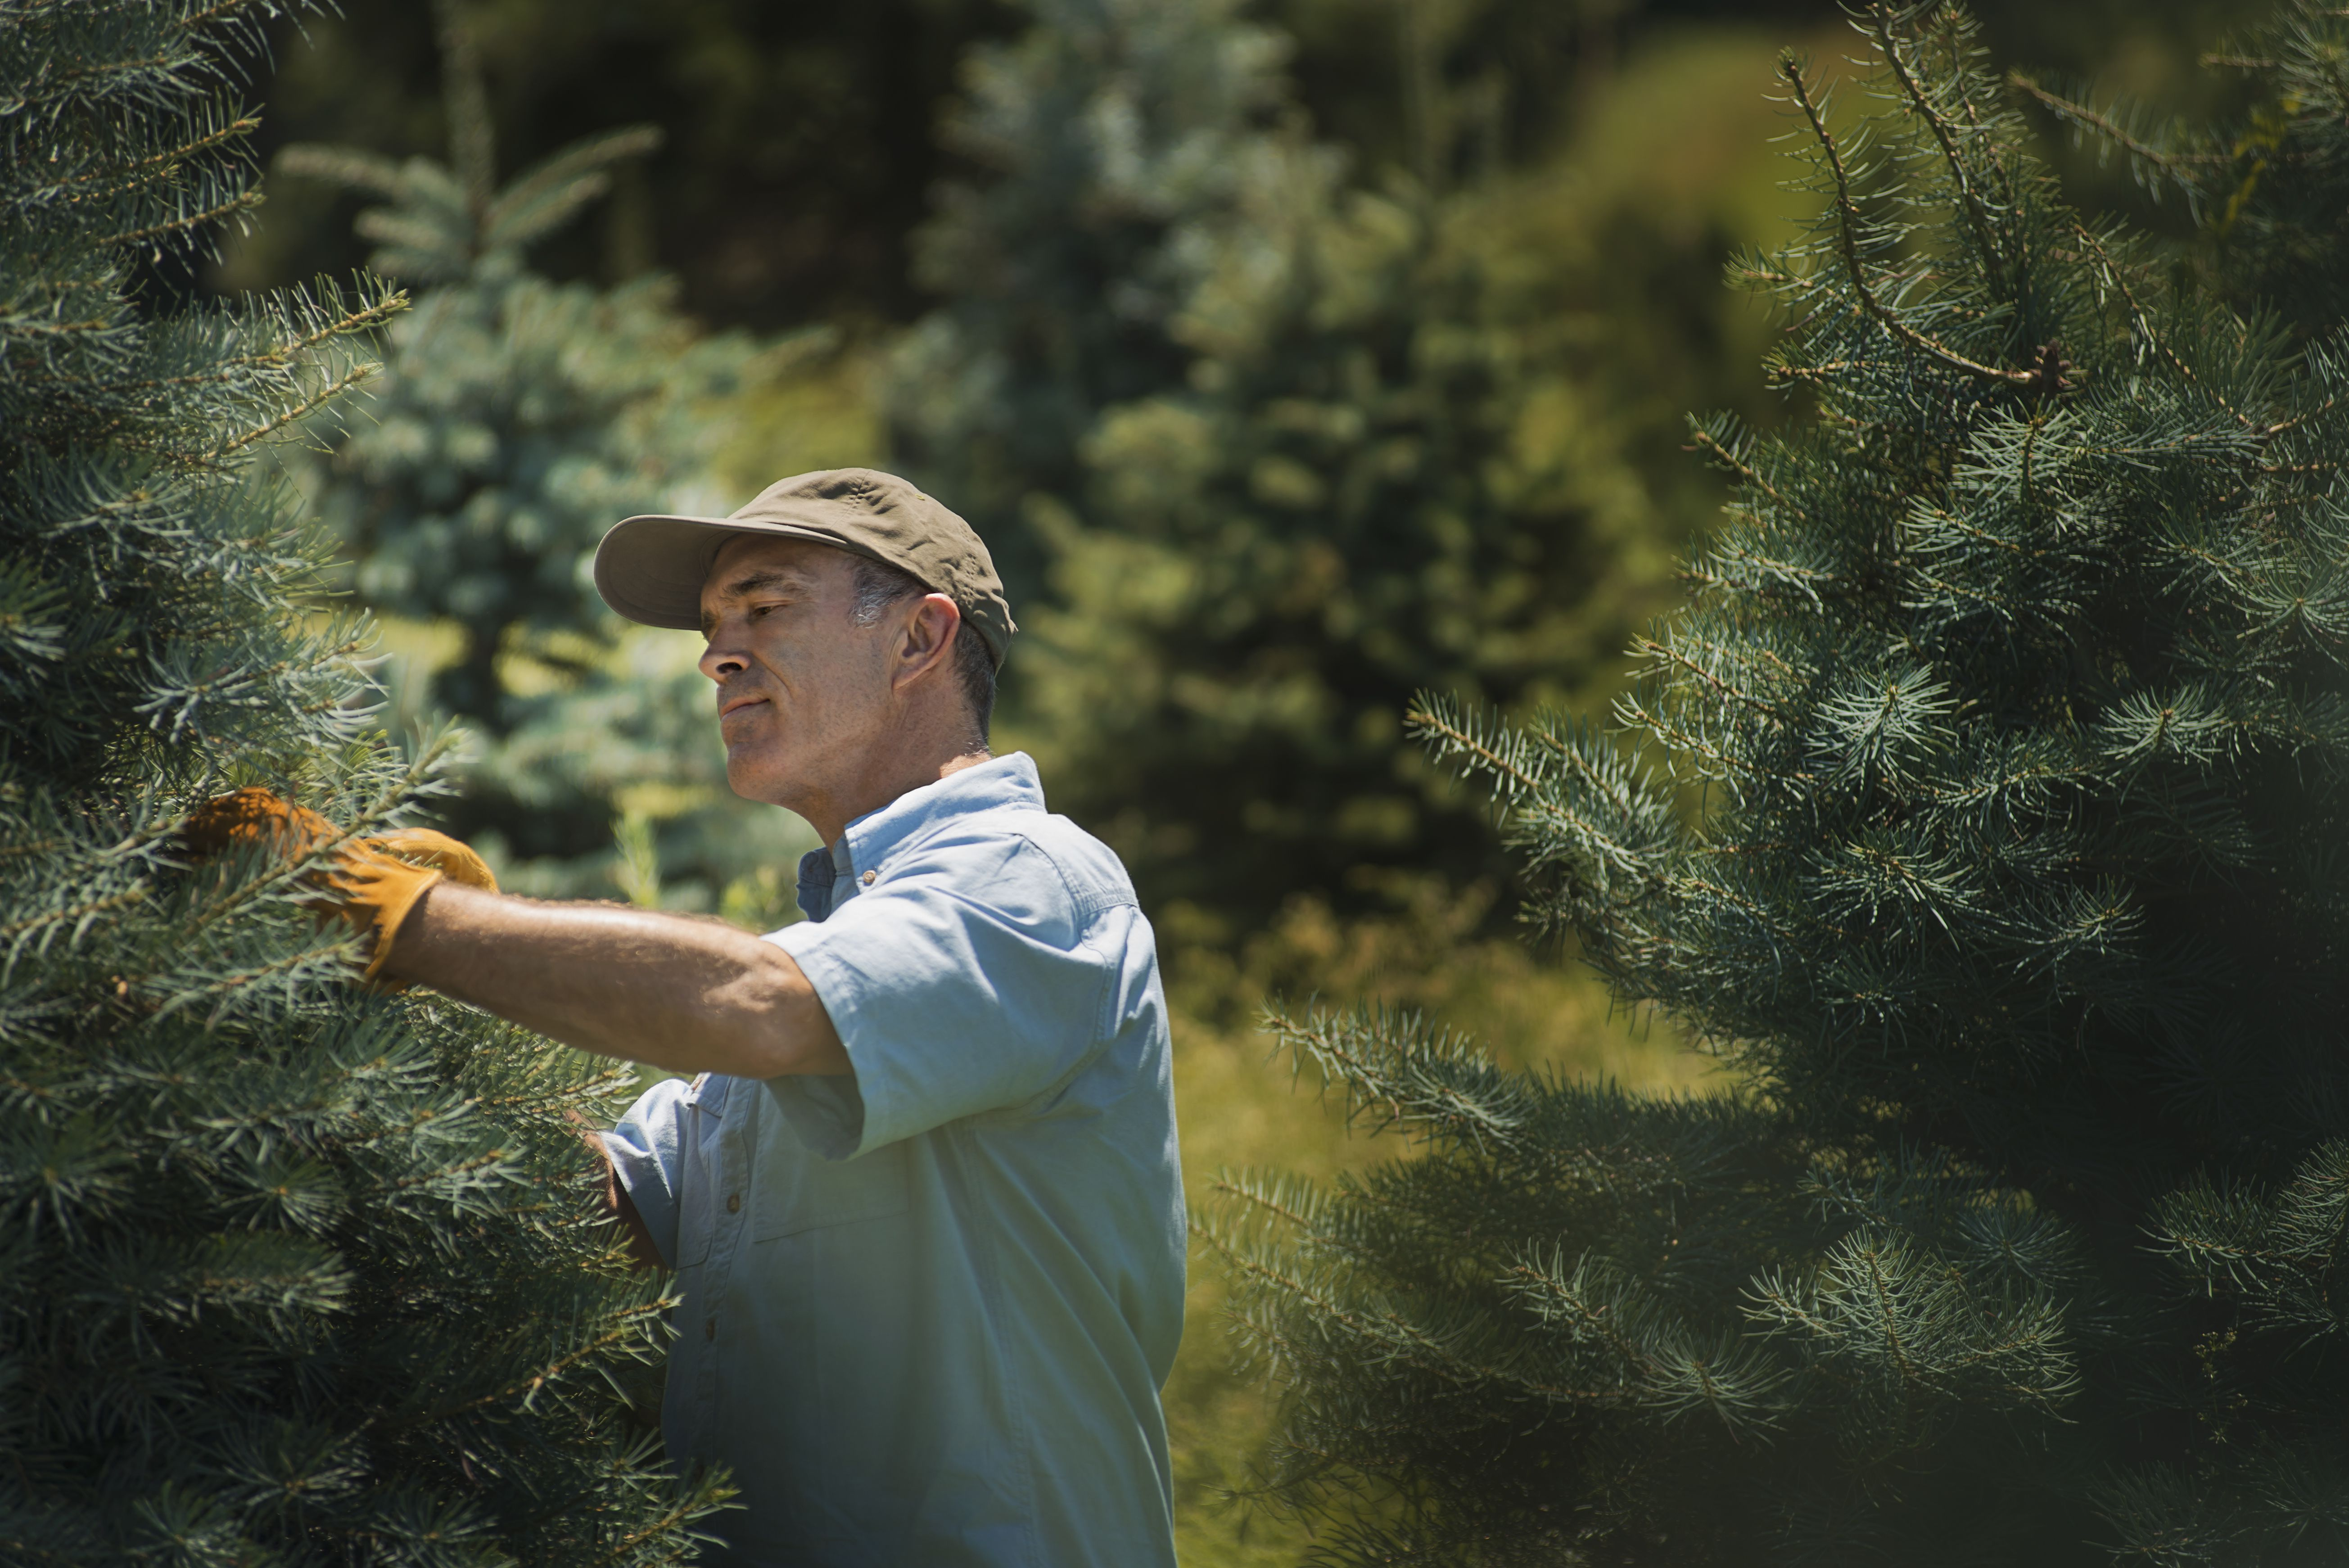 Evergreens Pruning Fir Trees in the Landscape